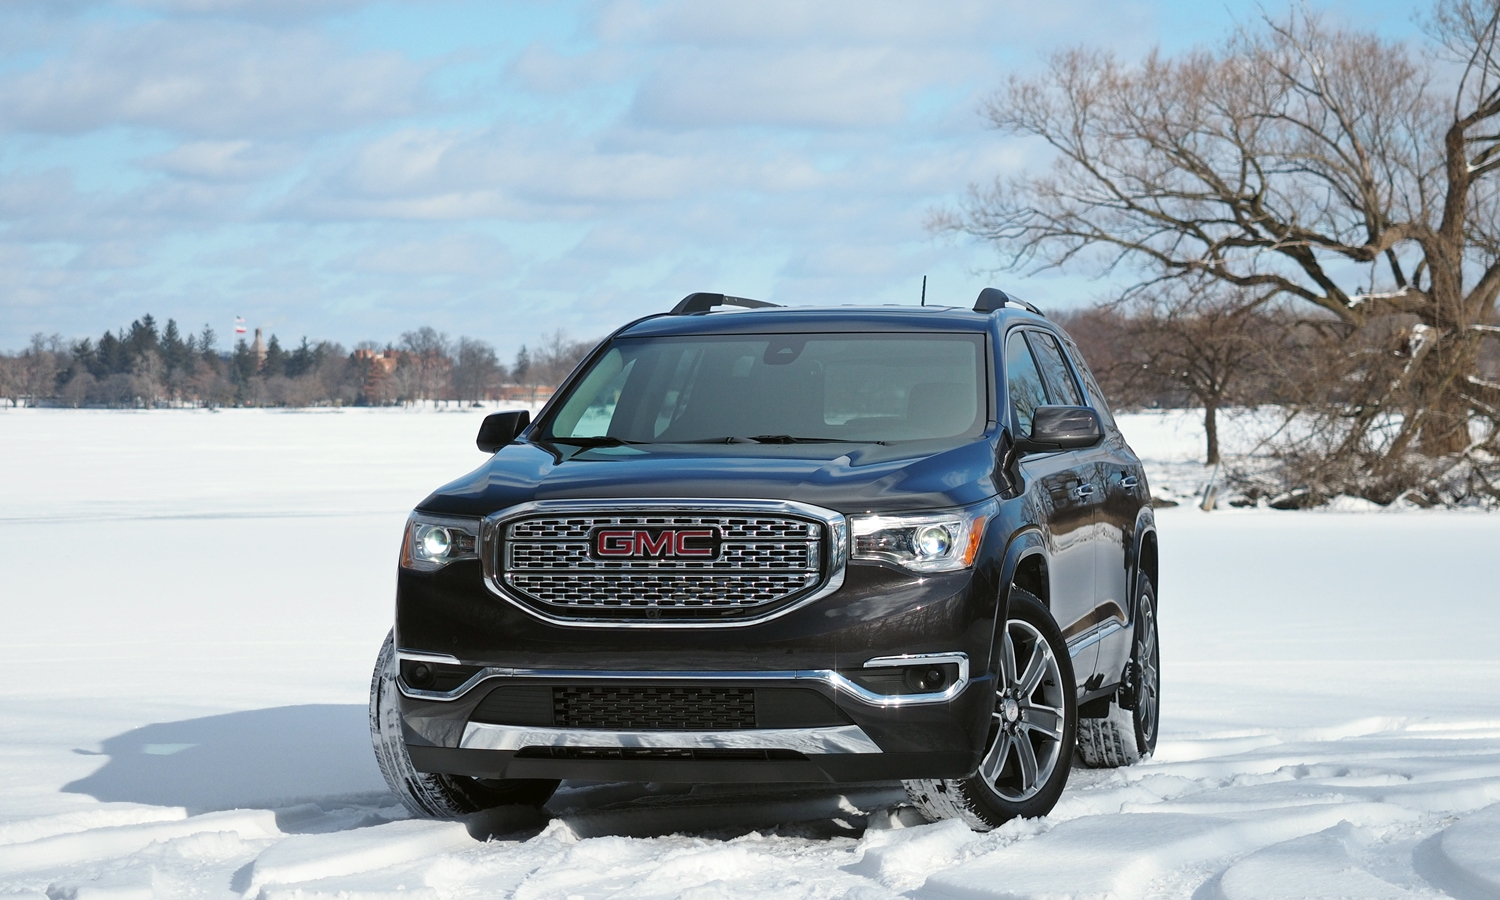 GMC Acadia Photos: 2017 GMC Acadia front angle view 2